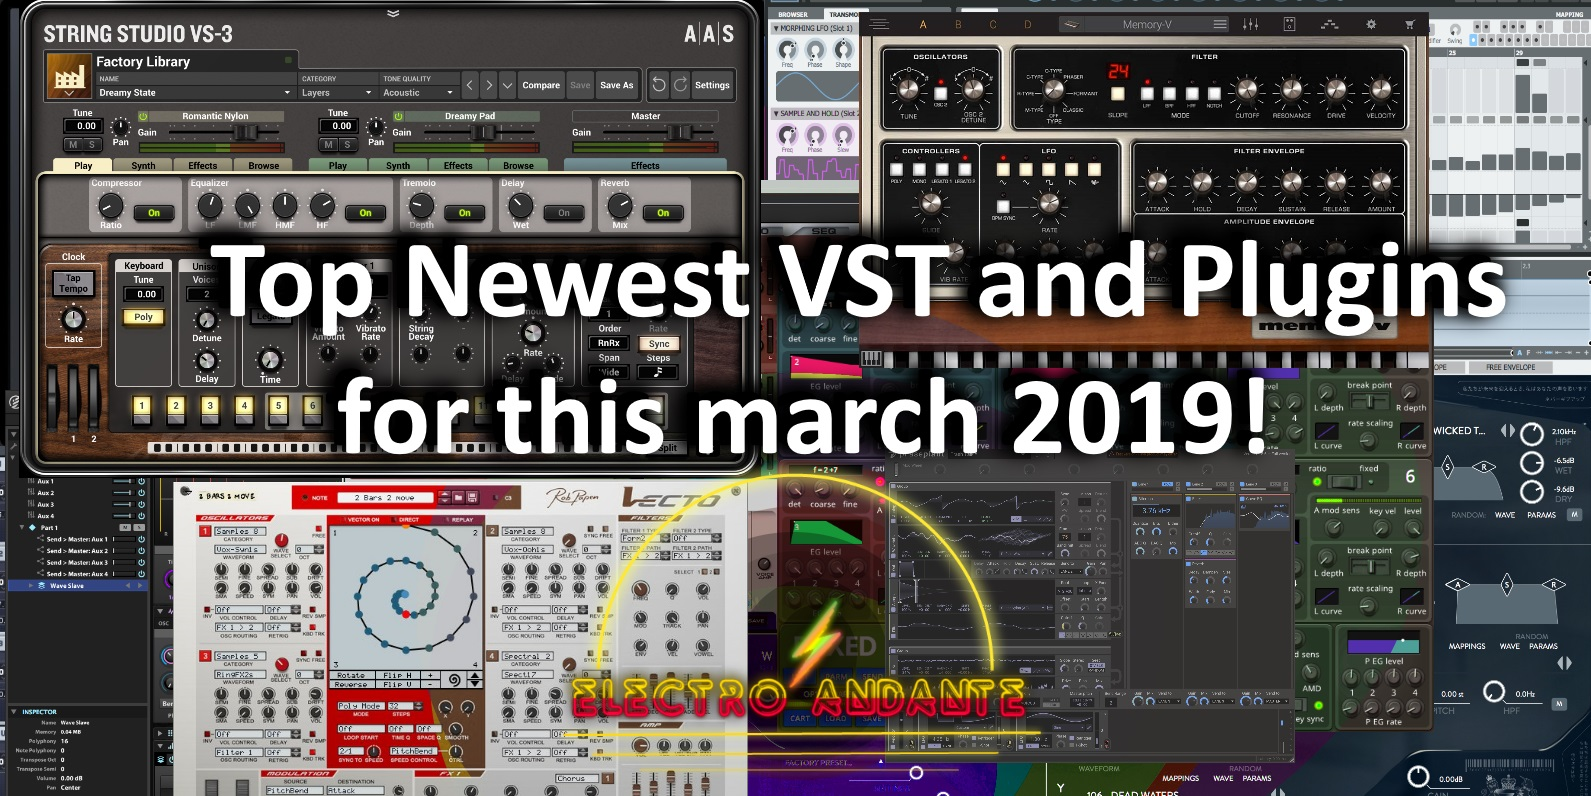 Top Newest VST and Plugins for this March 2019!